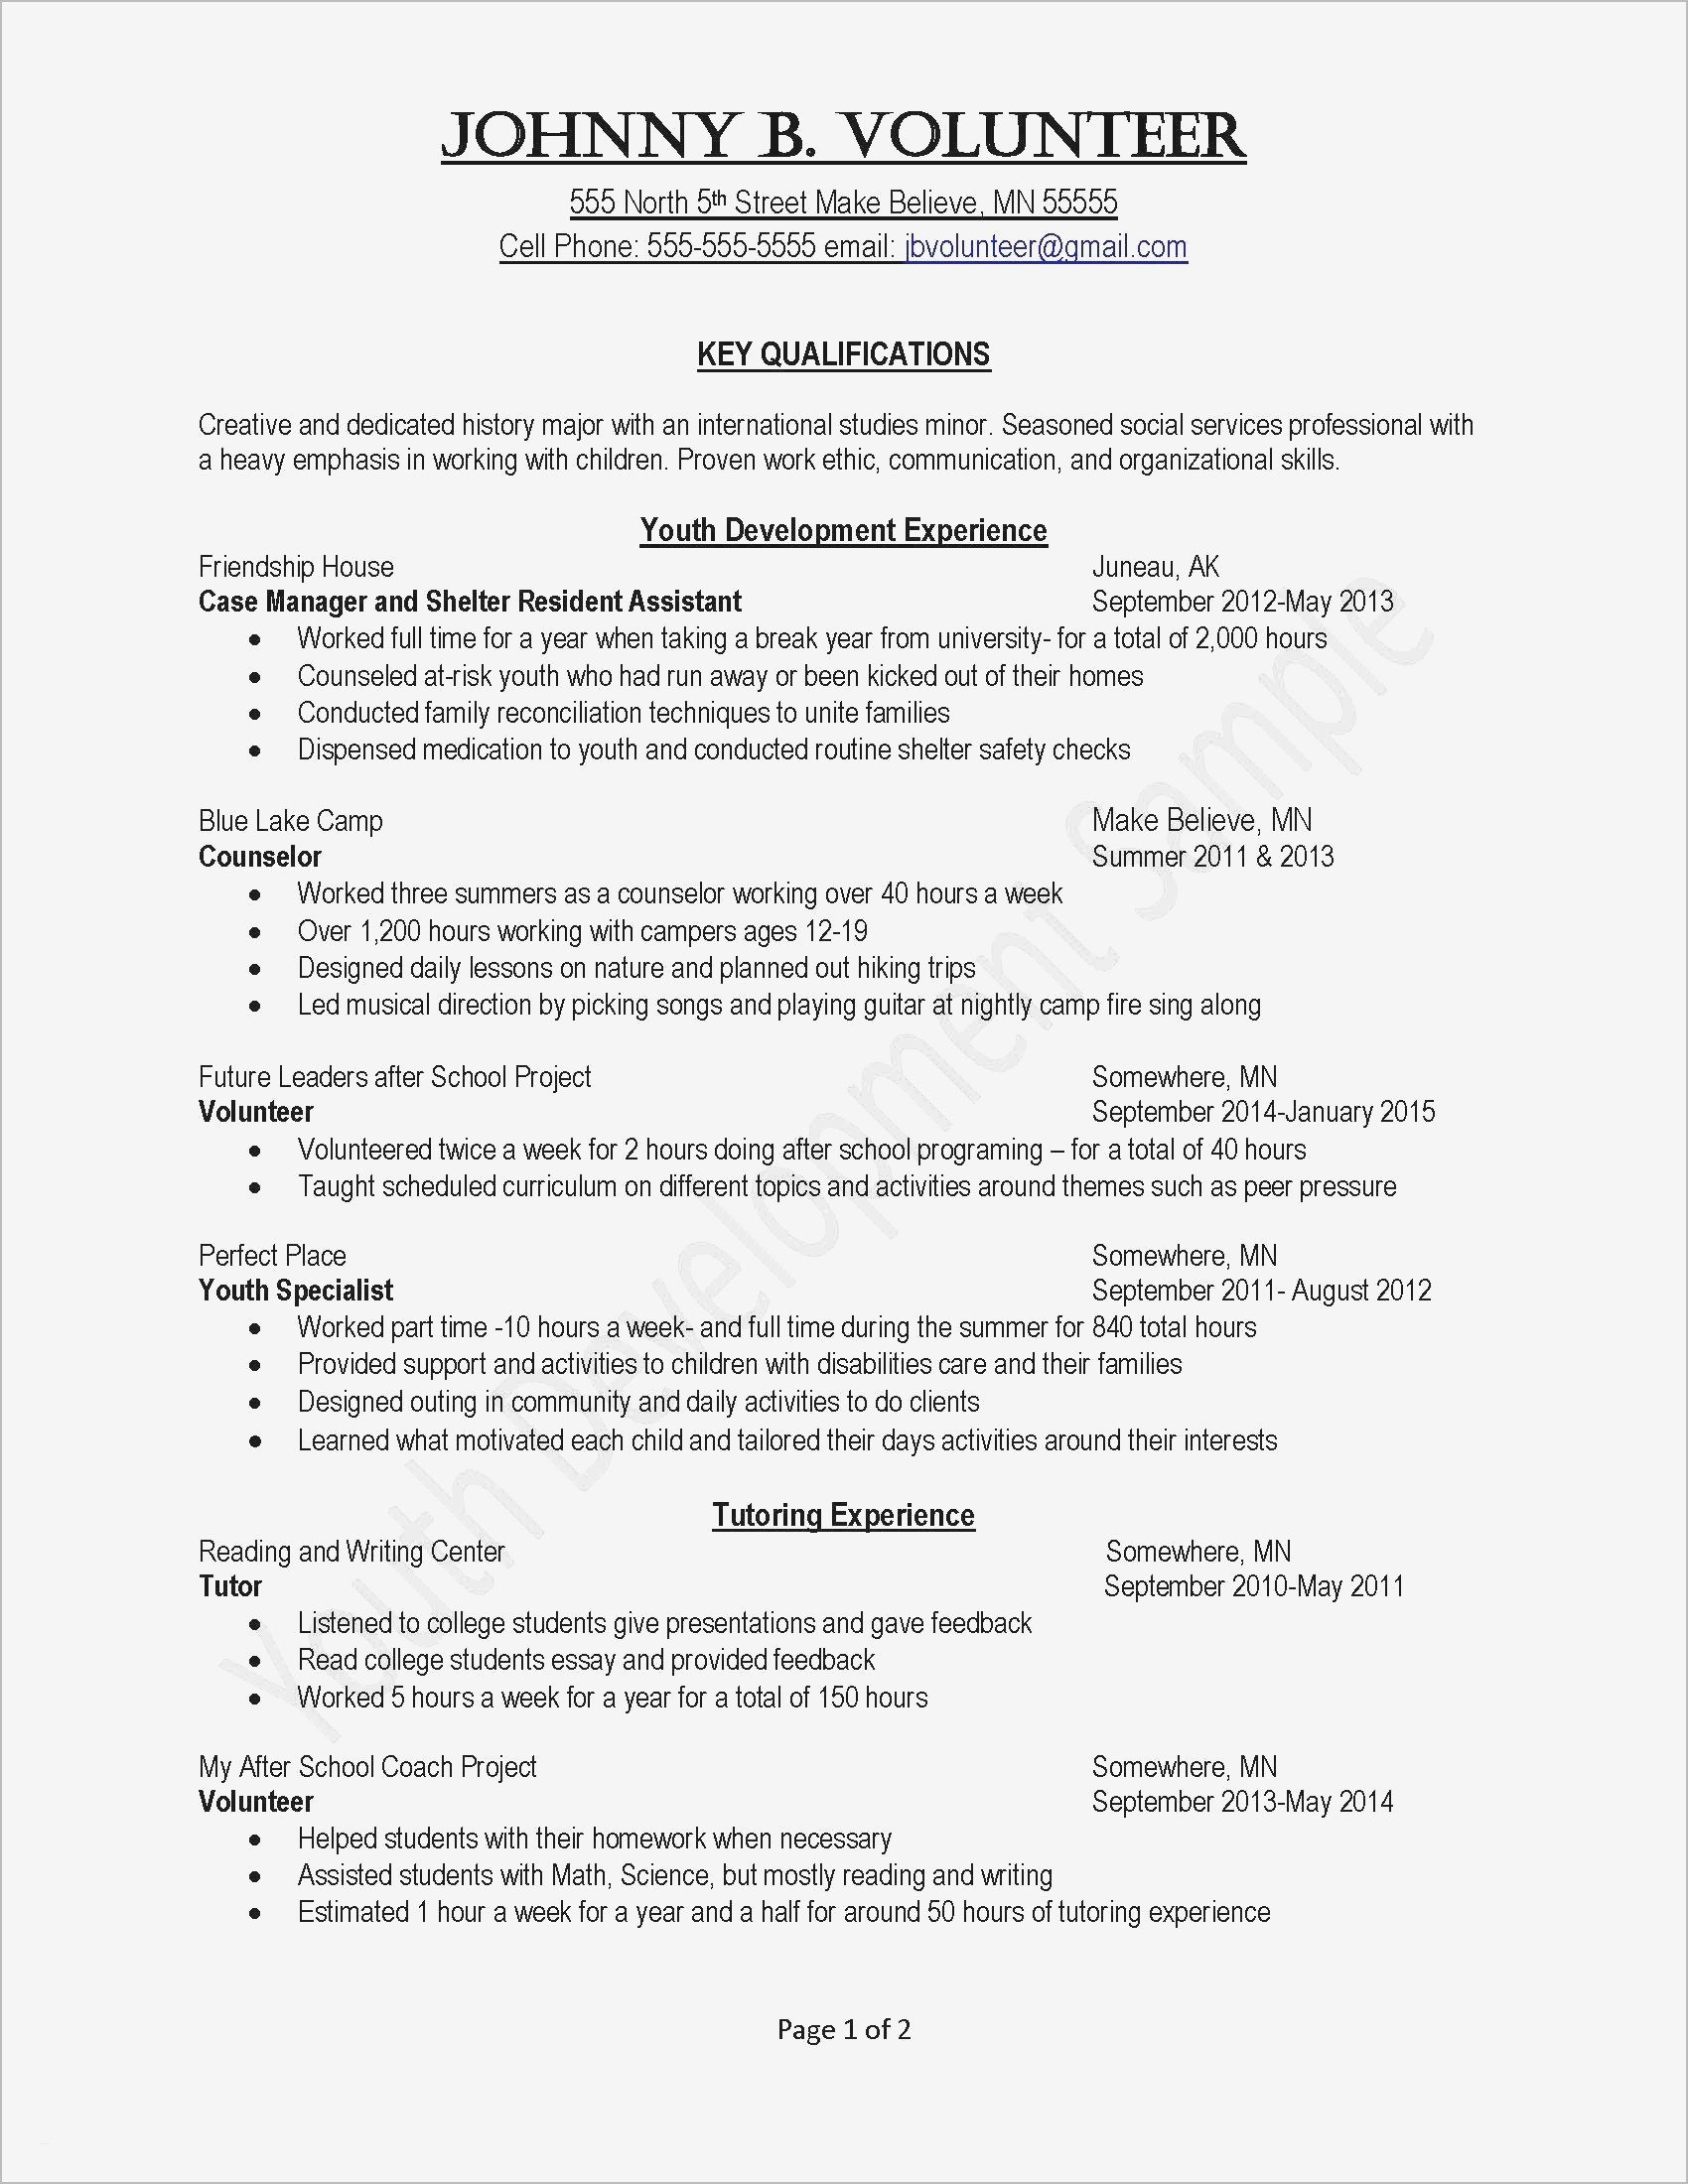 Job Offer Letter Template Free Download - Resume and Cover Letter Template Elegant Activities Resume Template